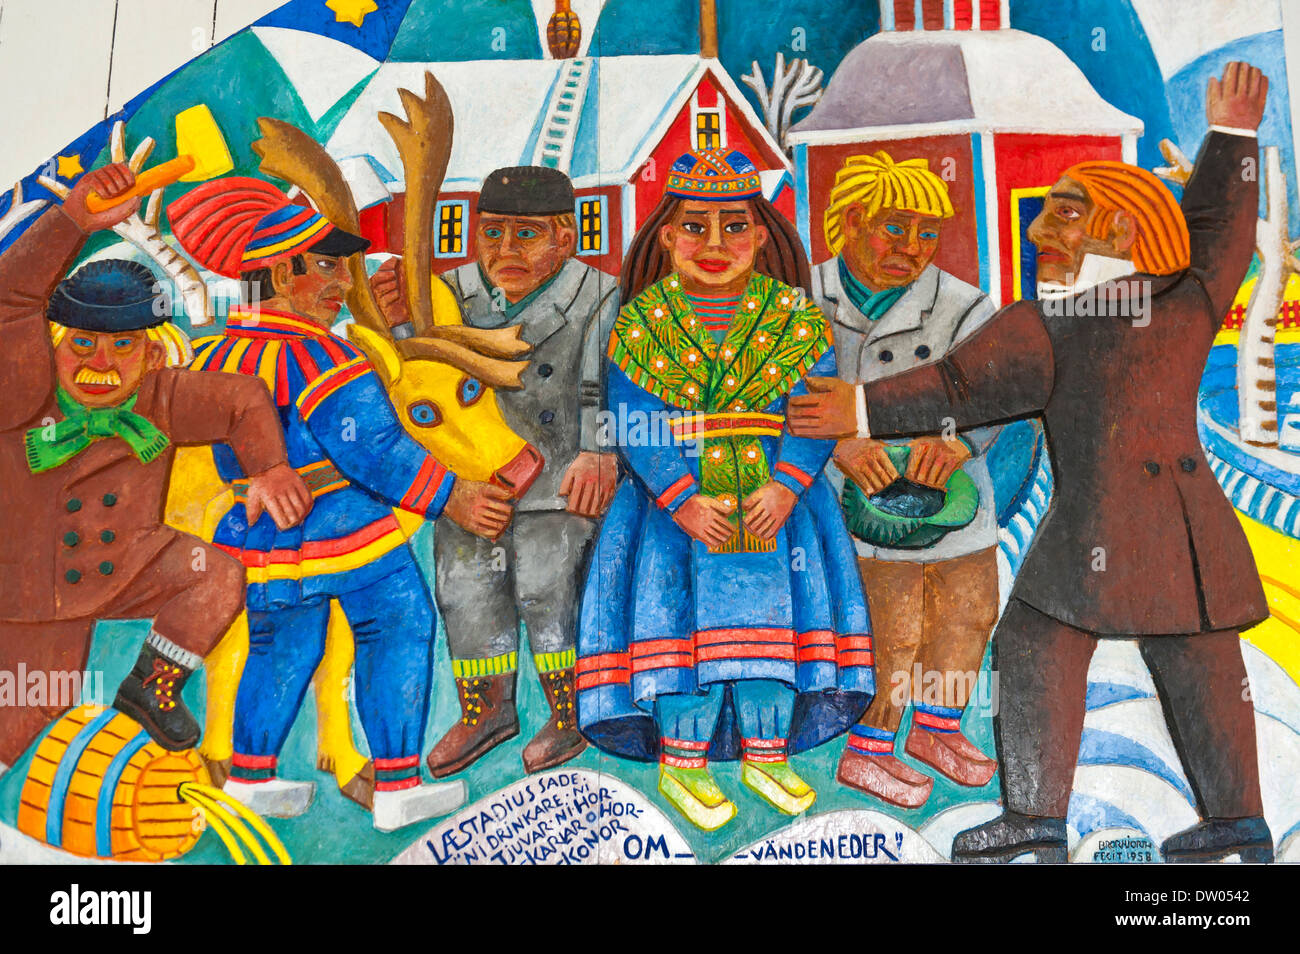 Sami art, the daily life of the Sami people, colourful wood carving, Sami-Christian altarpiece designed by artist Bror Hjort in - Stock Image